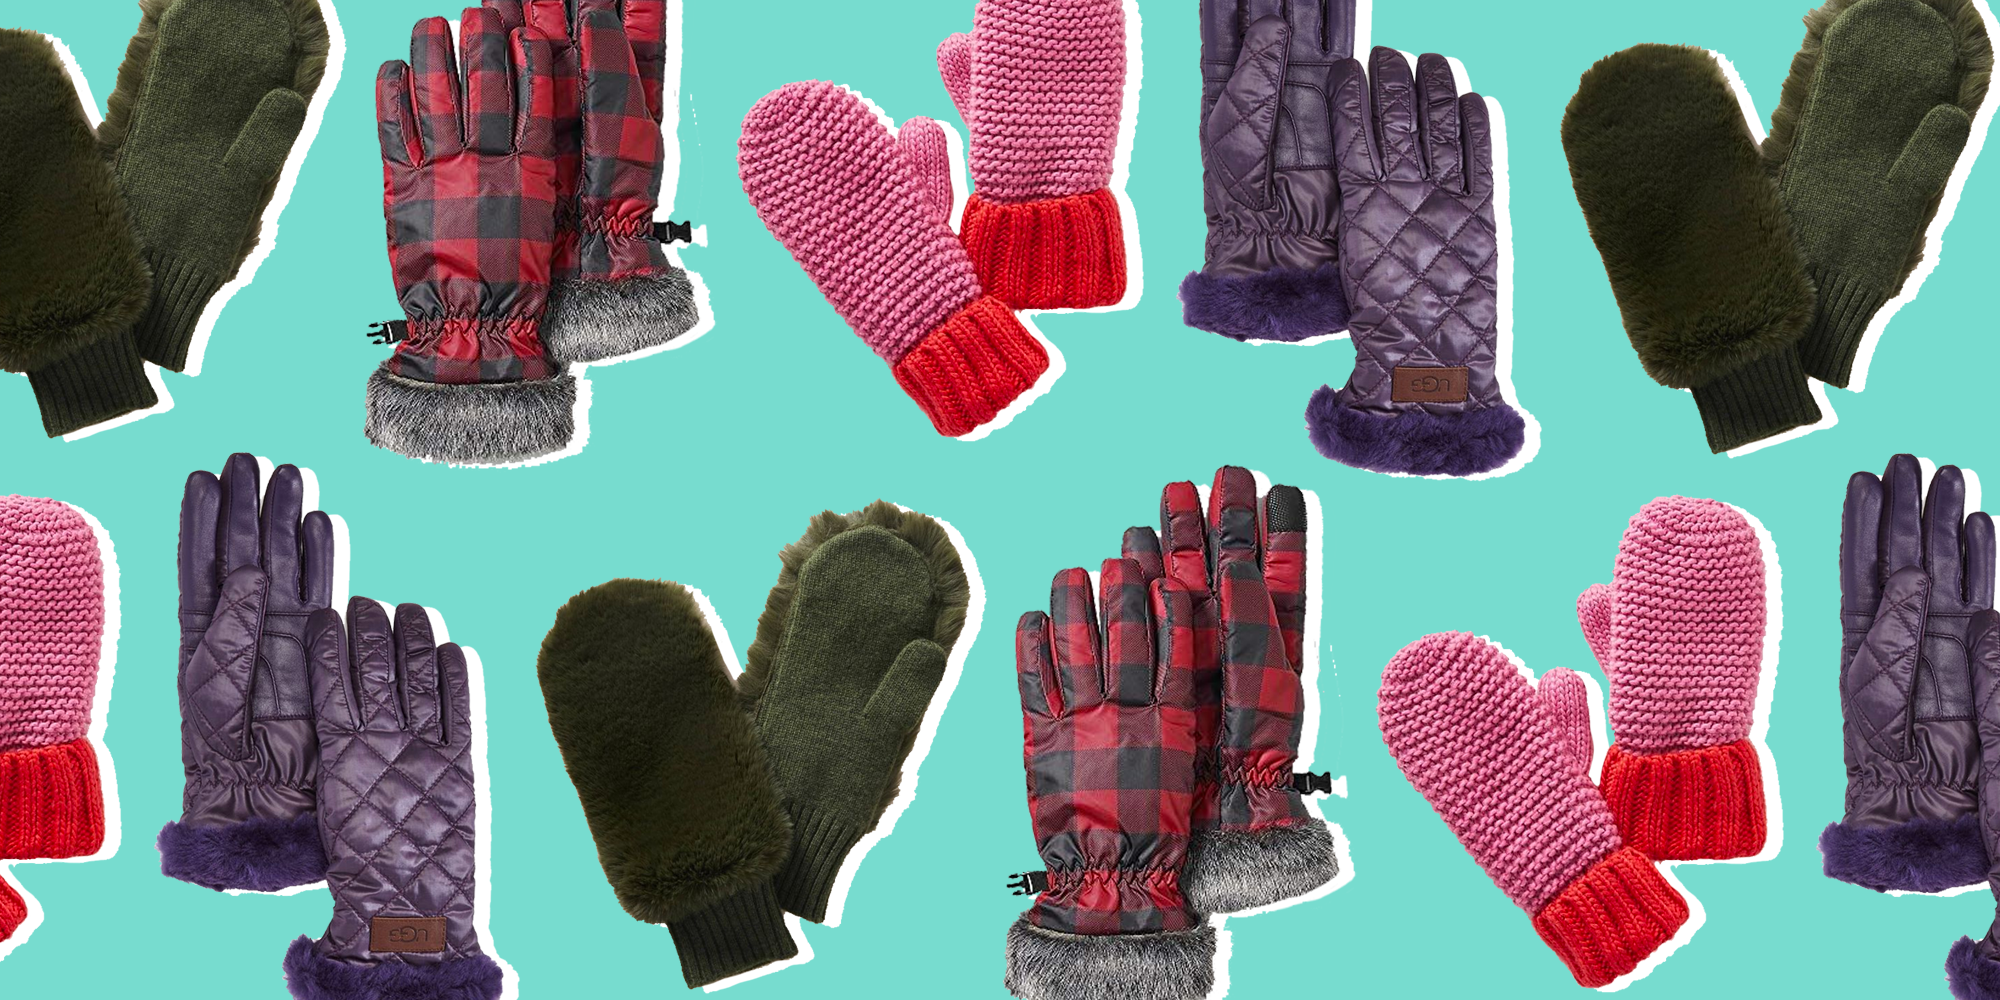 15 Warm Winter Gloves That Will Actually Protect Your Hands